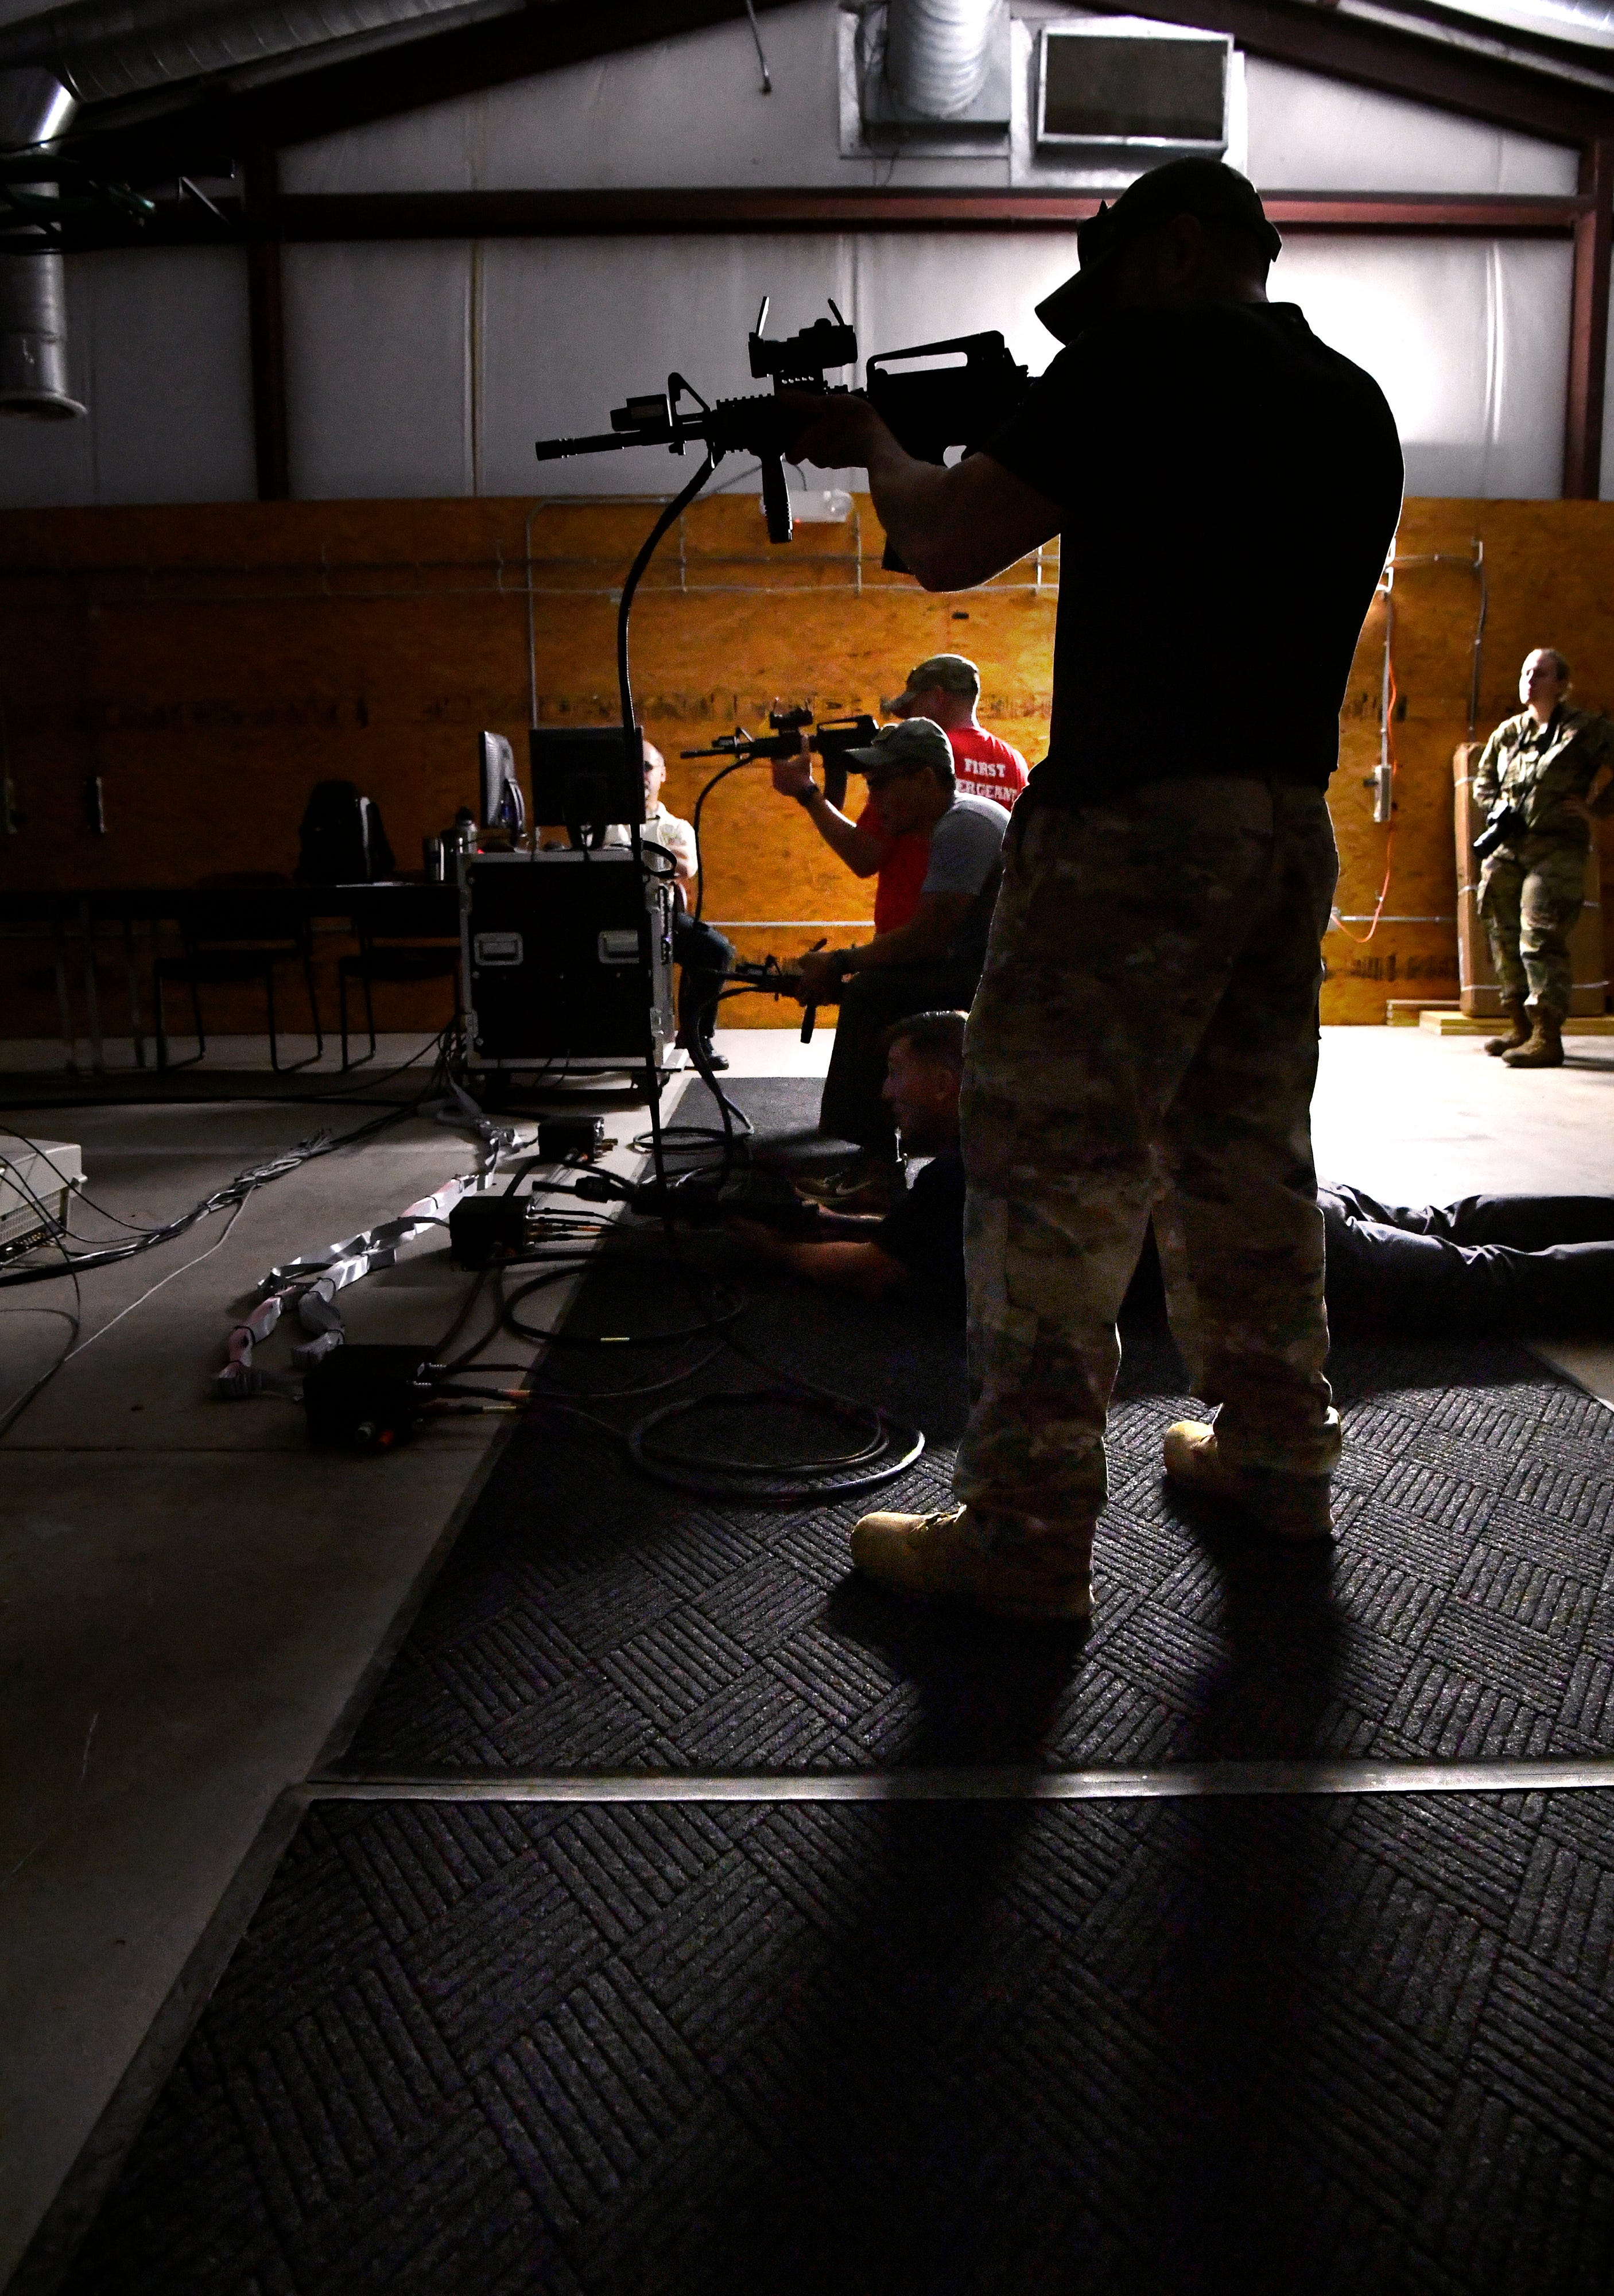 Senior Msgt. Pablo Rodriguez, of the 7th EMS at Dyess Air Force Base, fires an electronic M-16 during an obstacle course on base during a National Police Week event Wednesday. The military police officers were shooting with a computerized simulator.